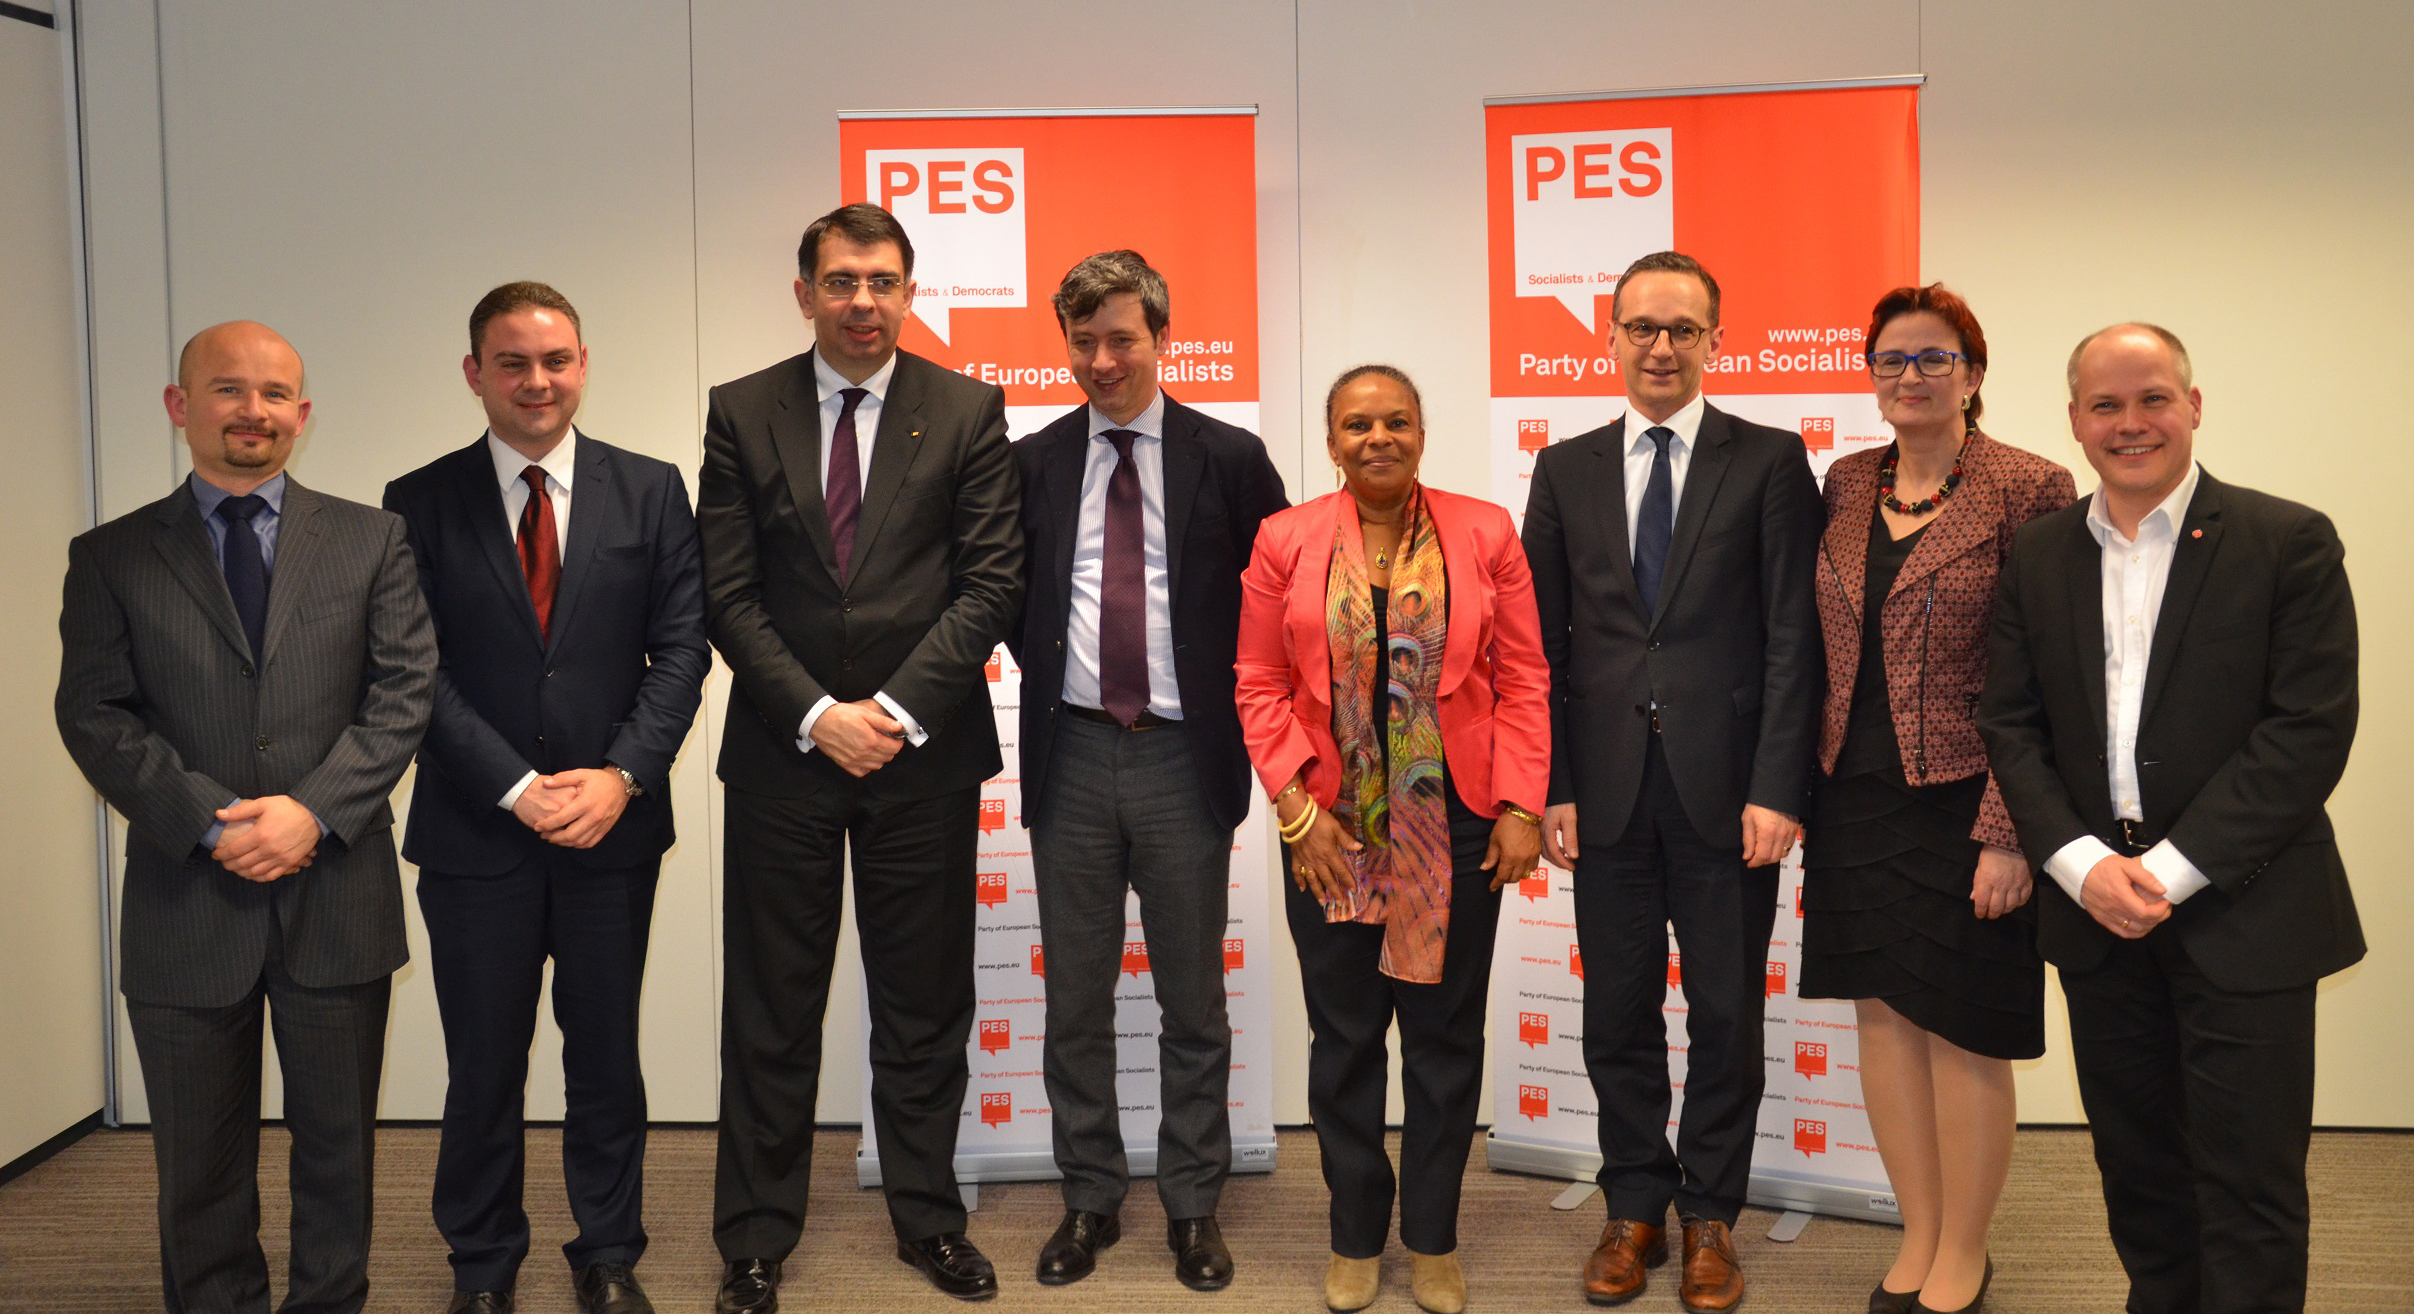 PES Justice and Home Affairs Ministers